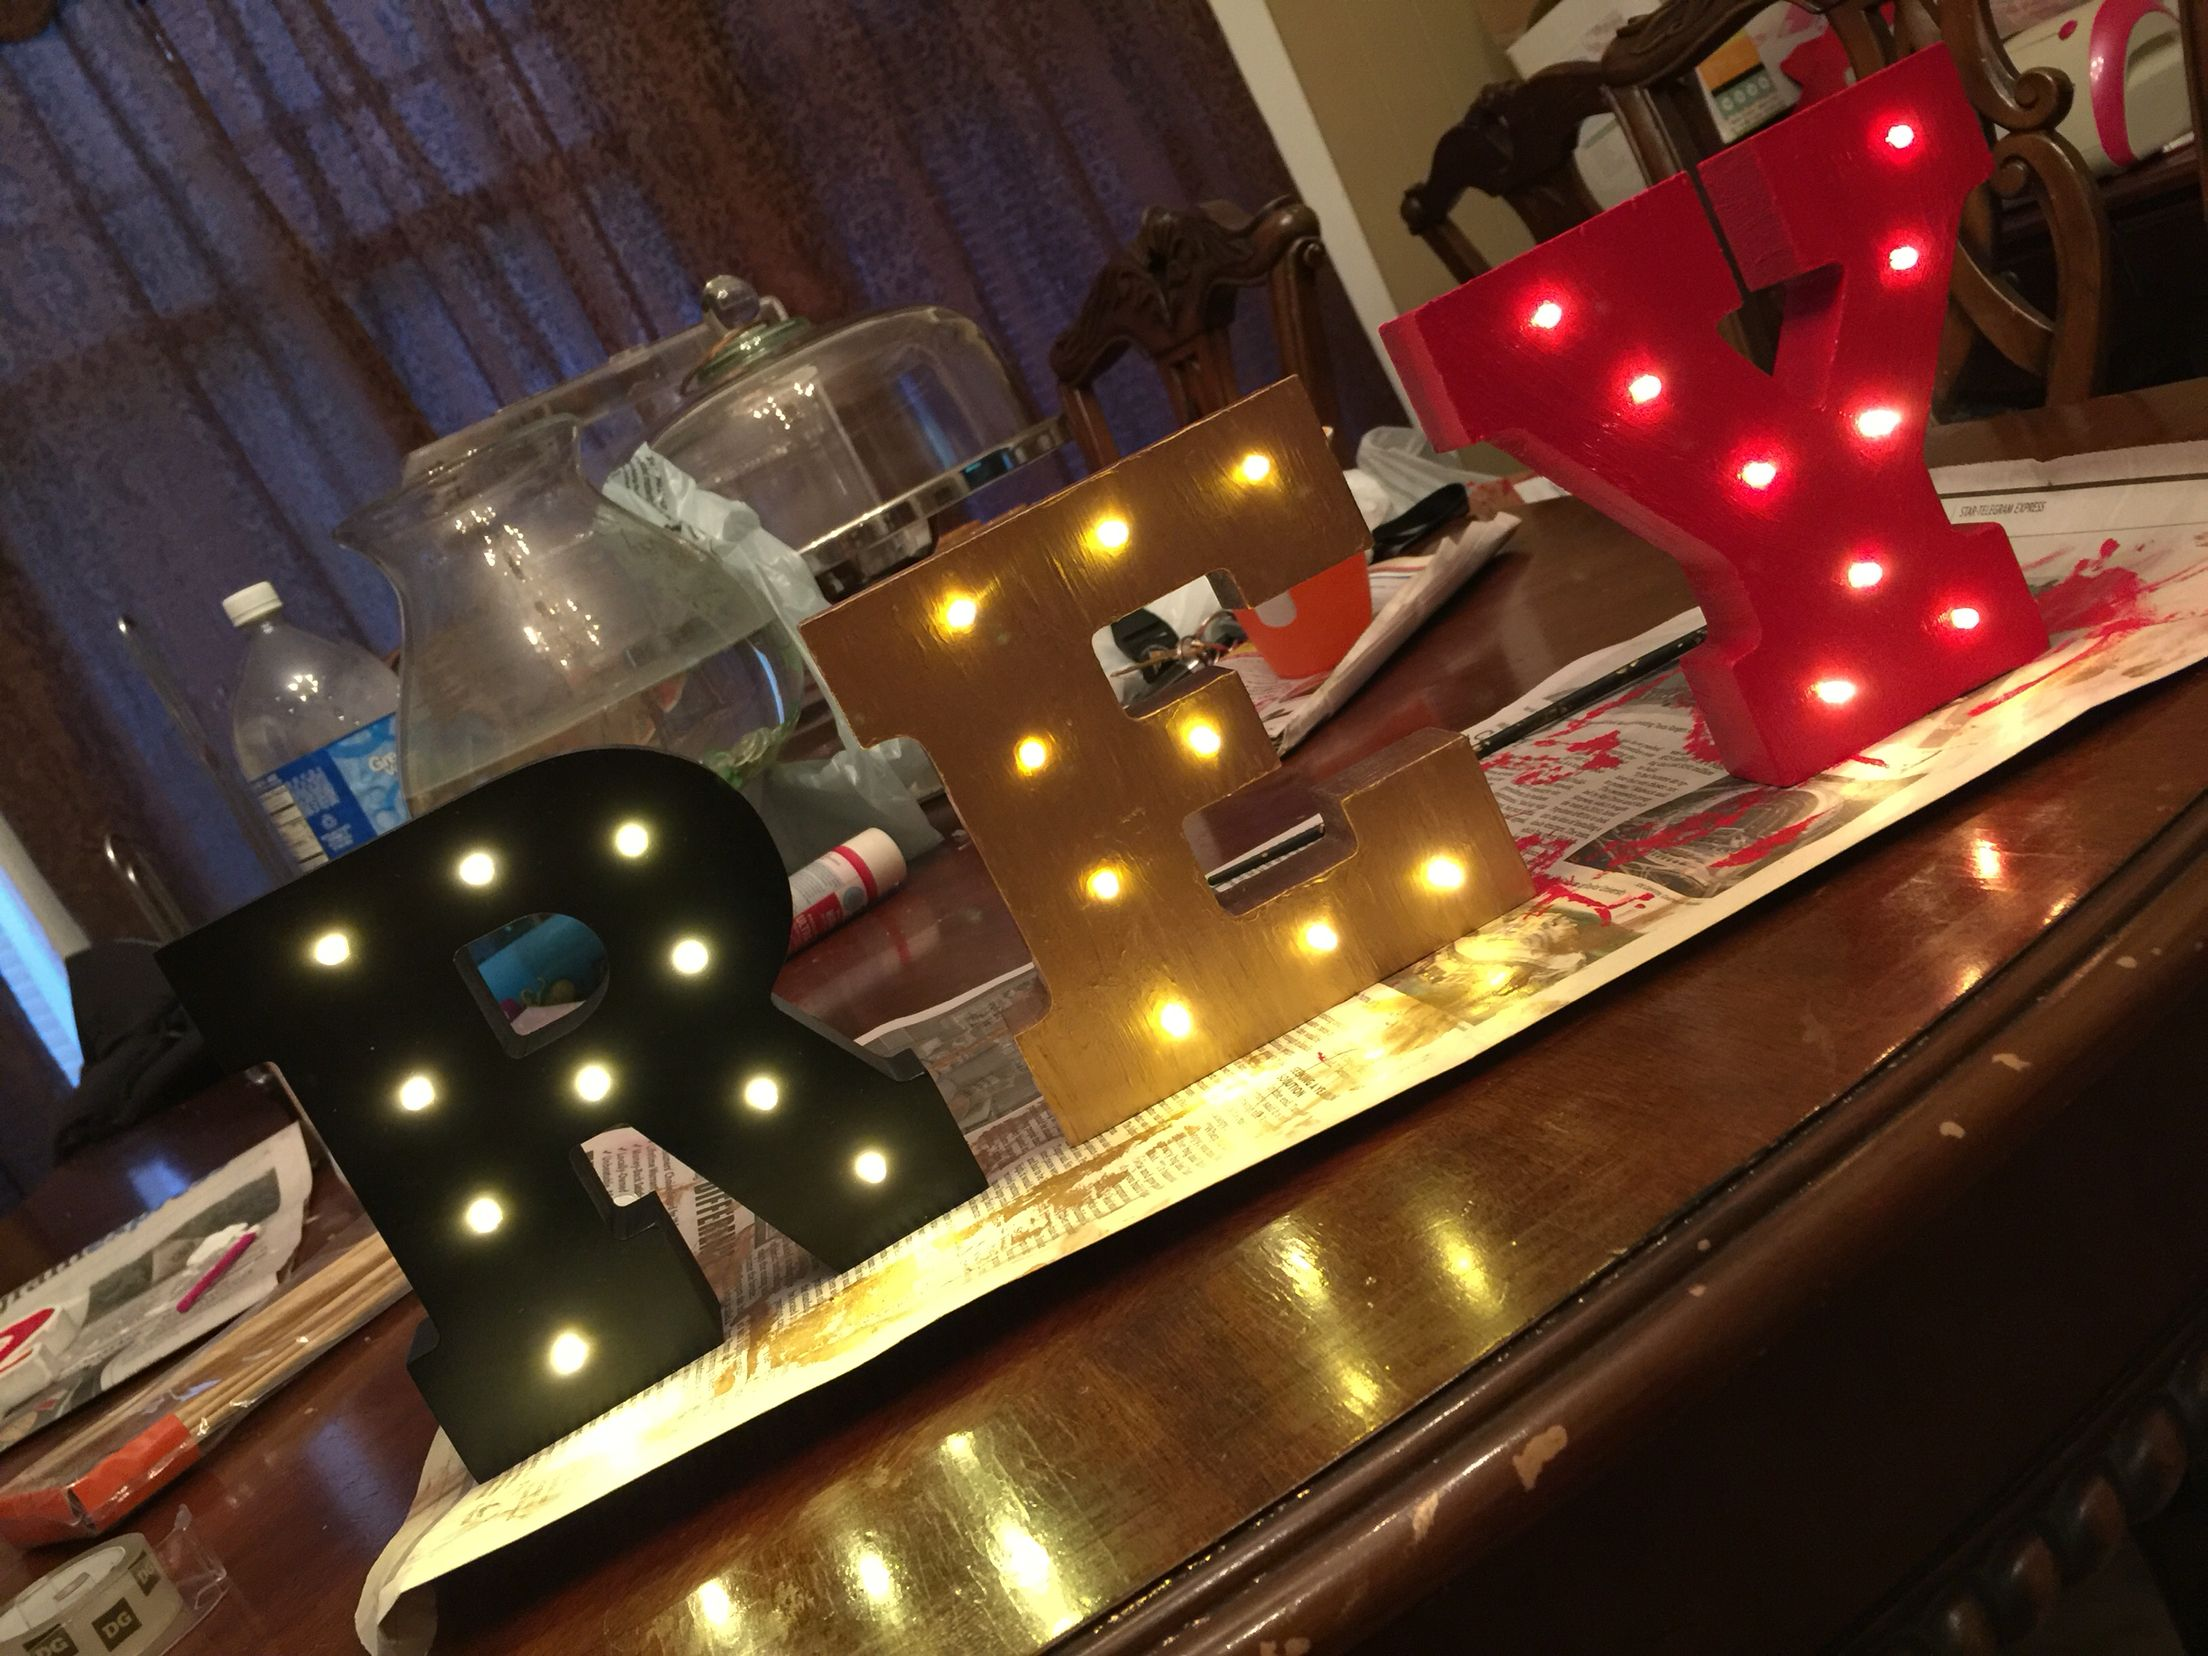 Cars Table Decorations Disney Cars Light Up Letters Red Gold Black Theme Table